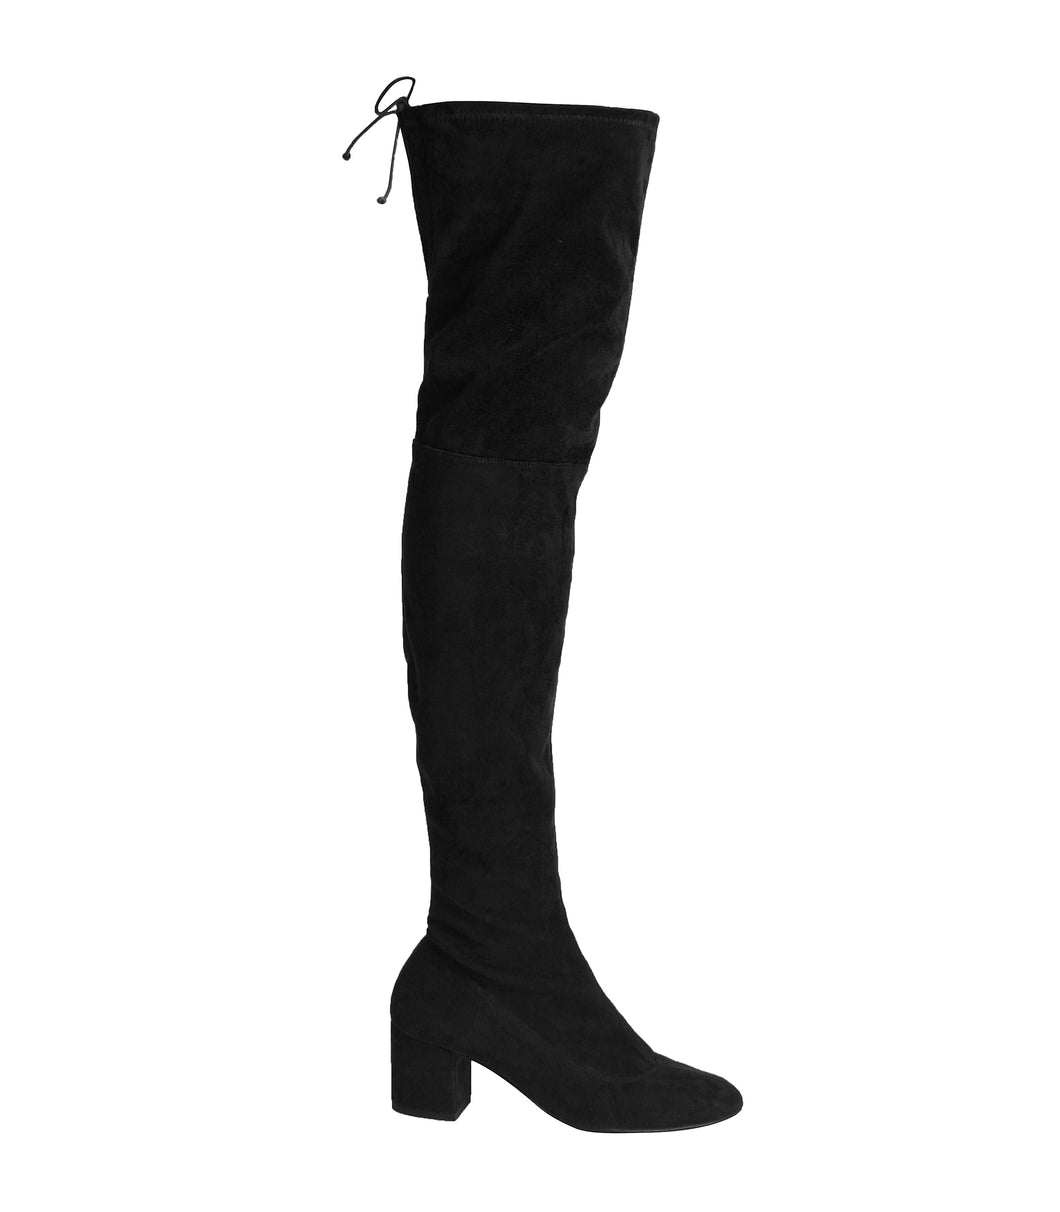 Macarena Boot - Black Suede is one of Barcemoda's best ladies black suede boots.